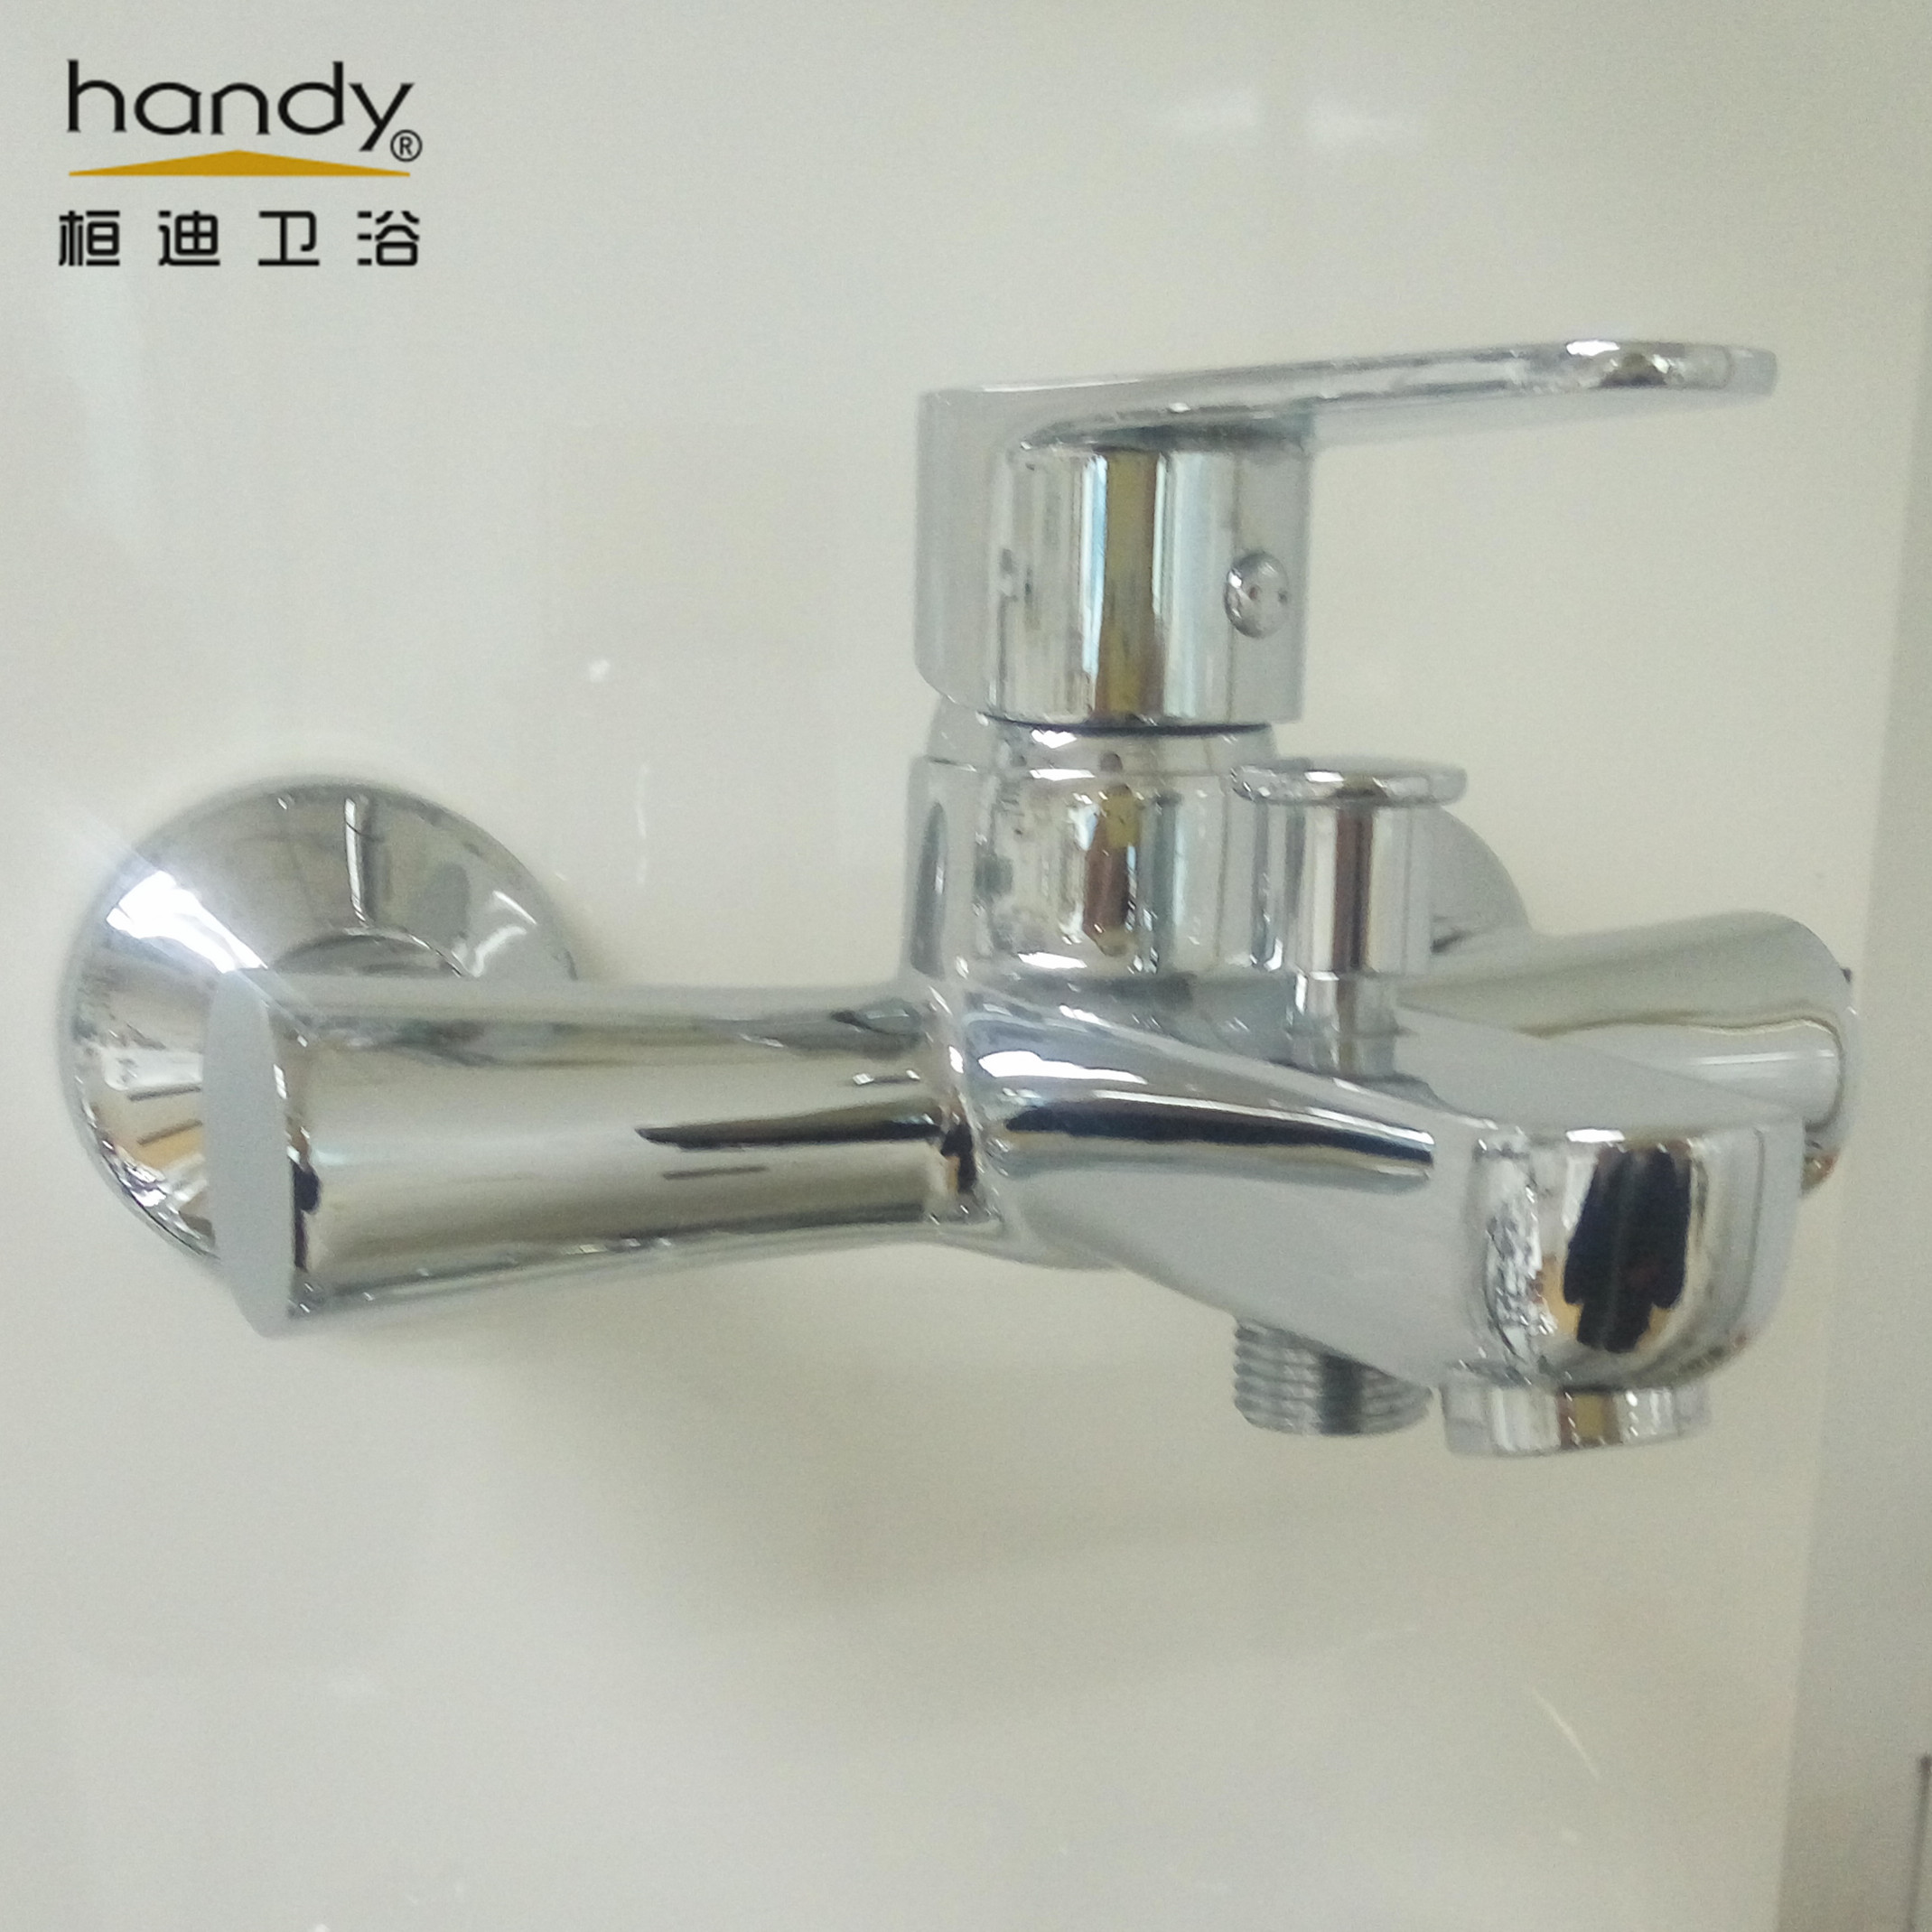 BRASS BATH SHOWER MIXER